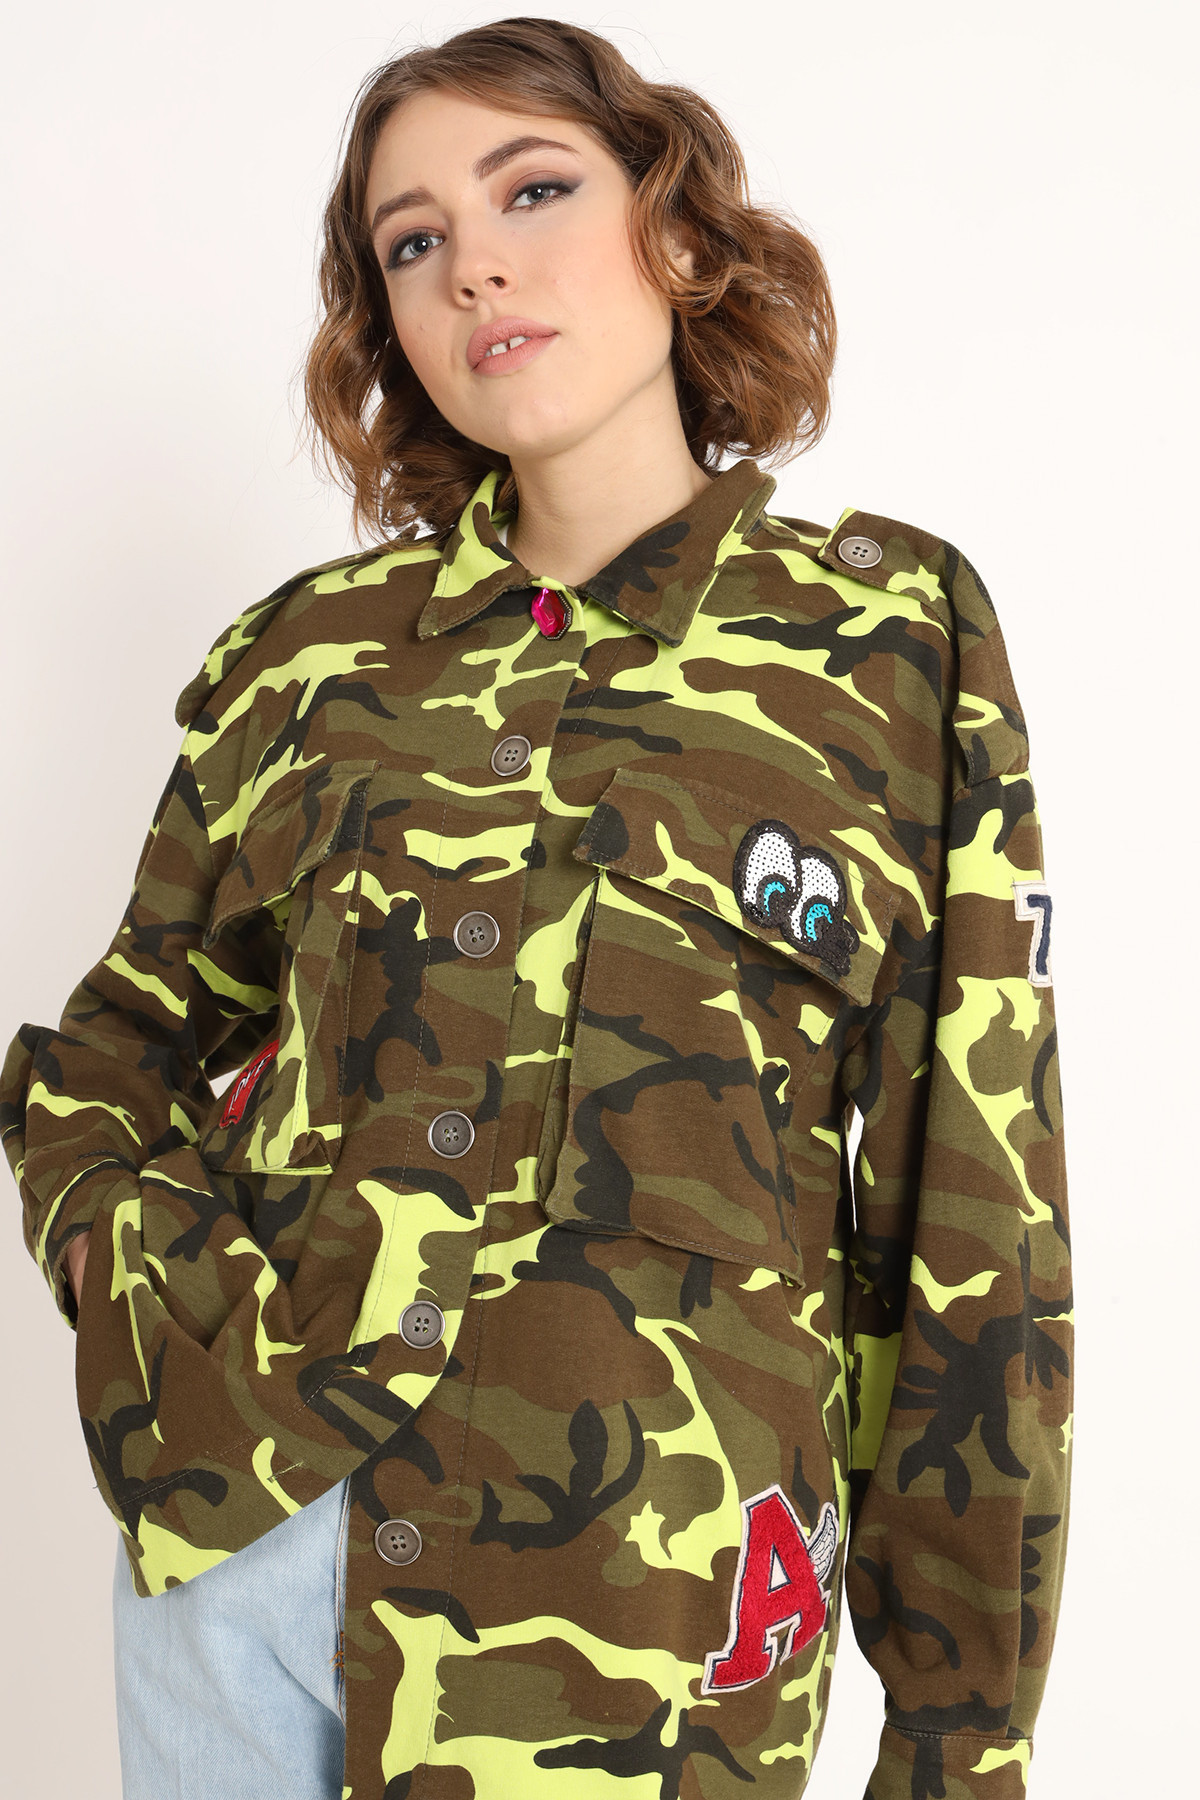 Camouflage Sweatshirt Jacket with Patches